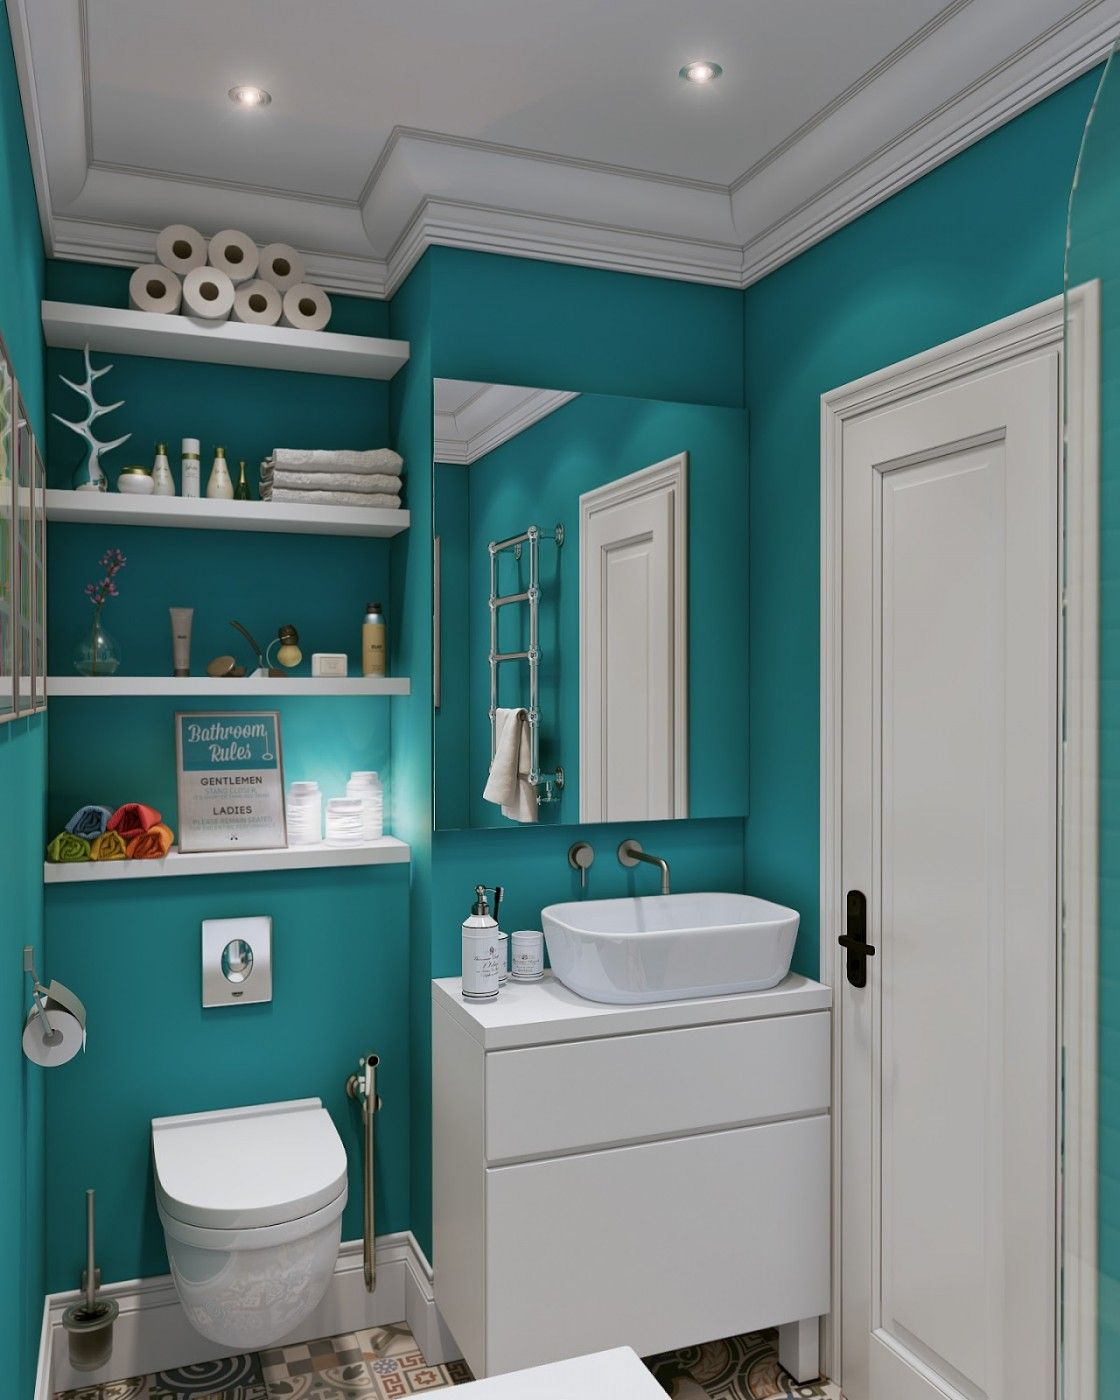 Bright colored bathrooms - Contemporary Teal Bathroom Wall Color Scheme With Wooden Shelves Above Toilet As